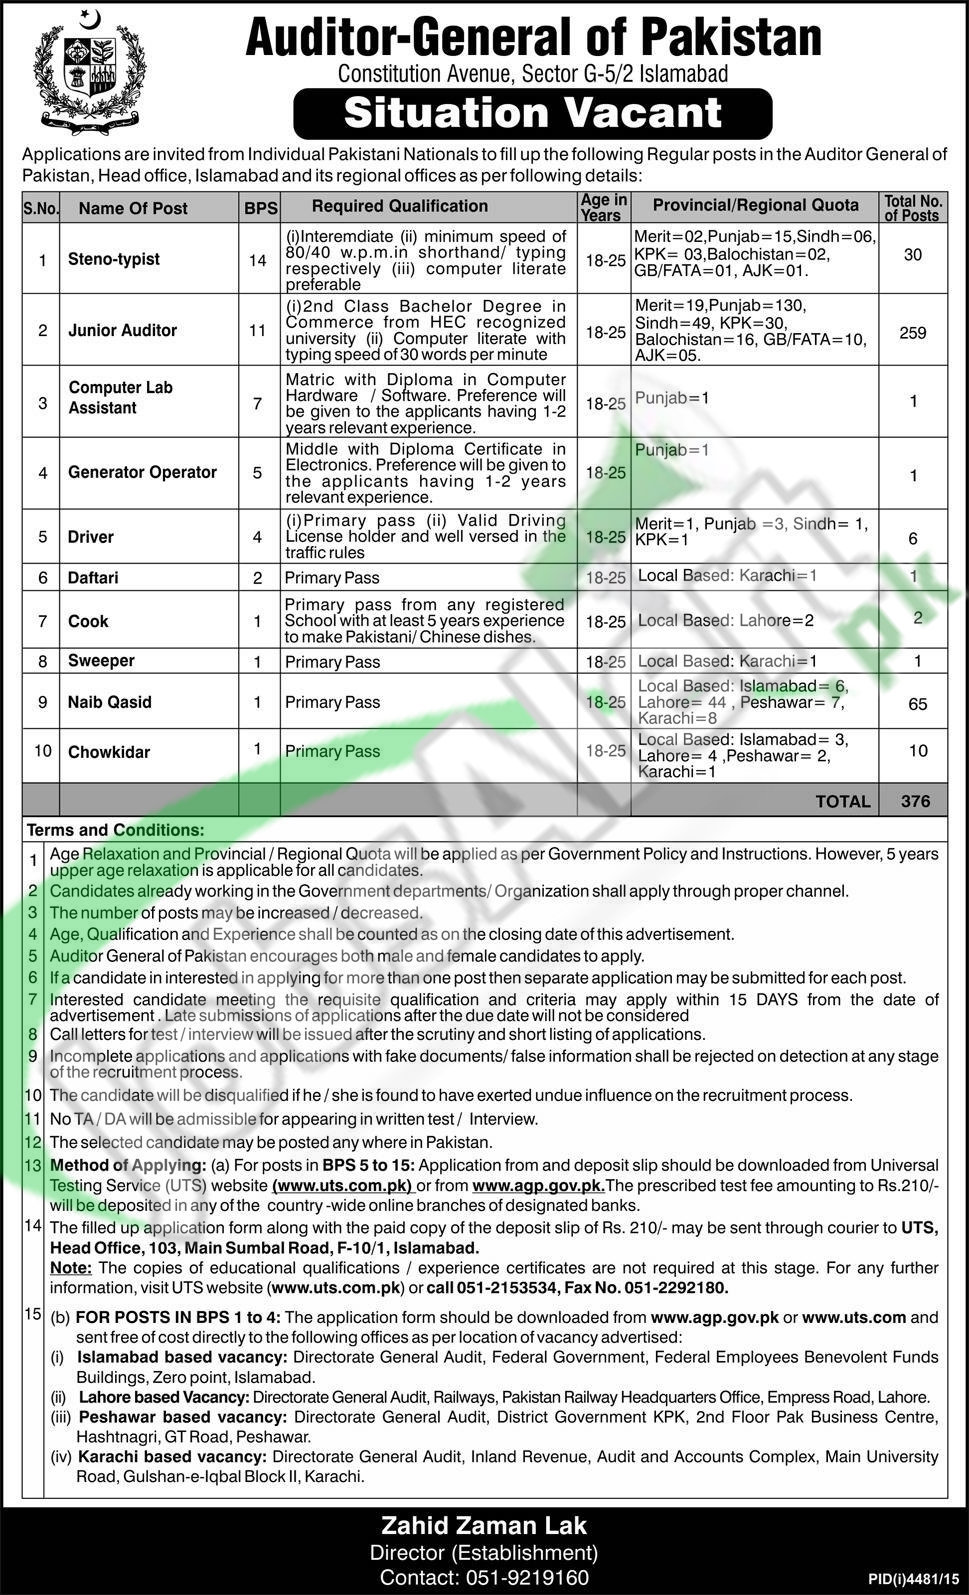 Siuations Vacant in Auditor General of Pakistan Jobs 28 February 2016 Application Form Latest